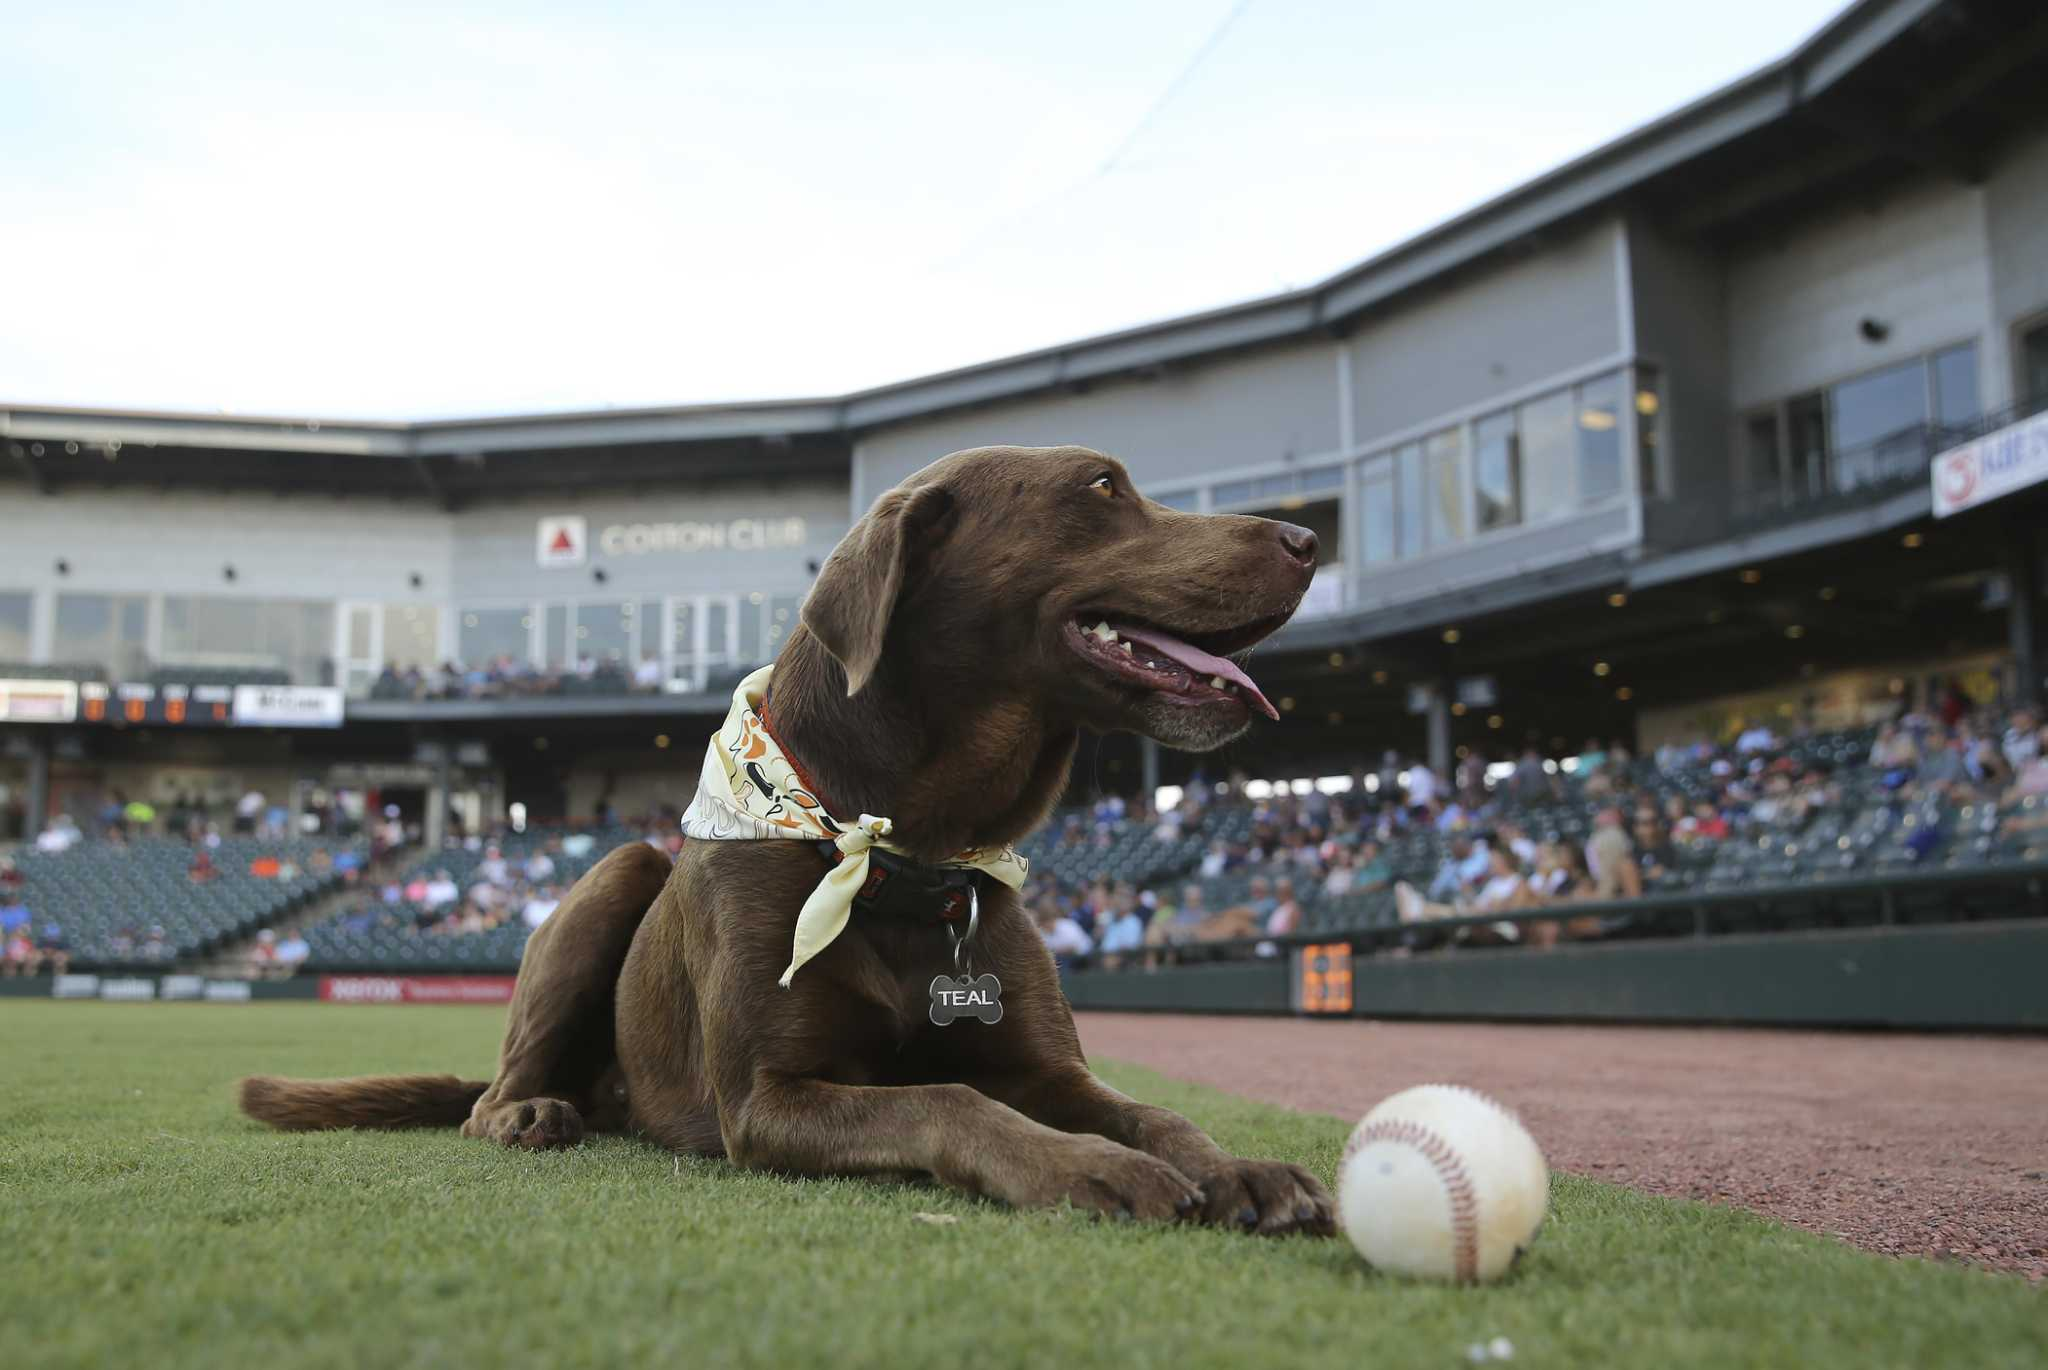 A fetching story: How a dog won the hearts of fans and players in Corpus Christi